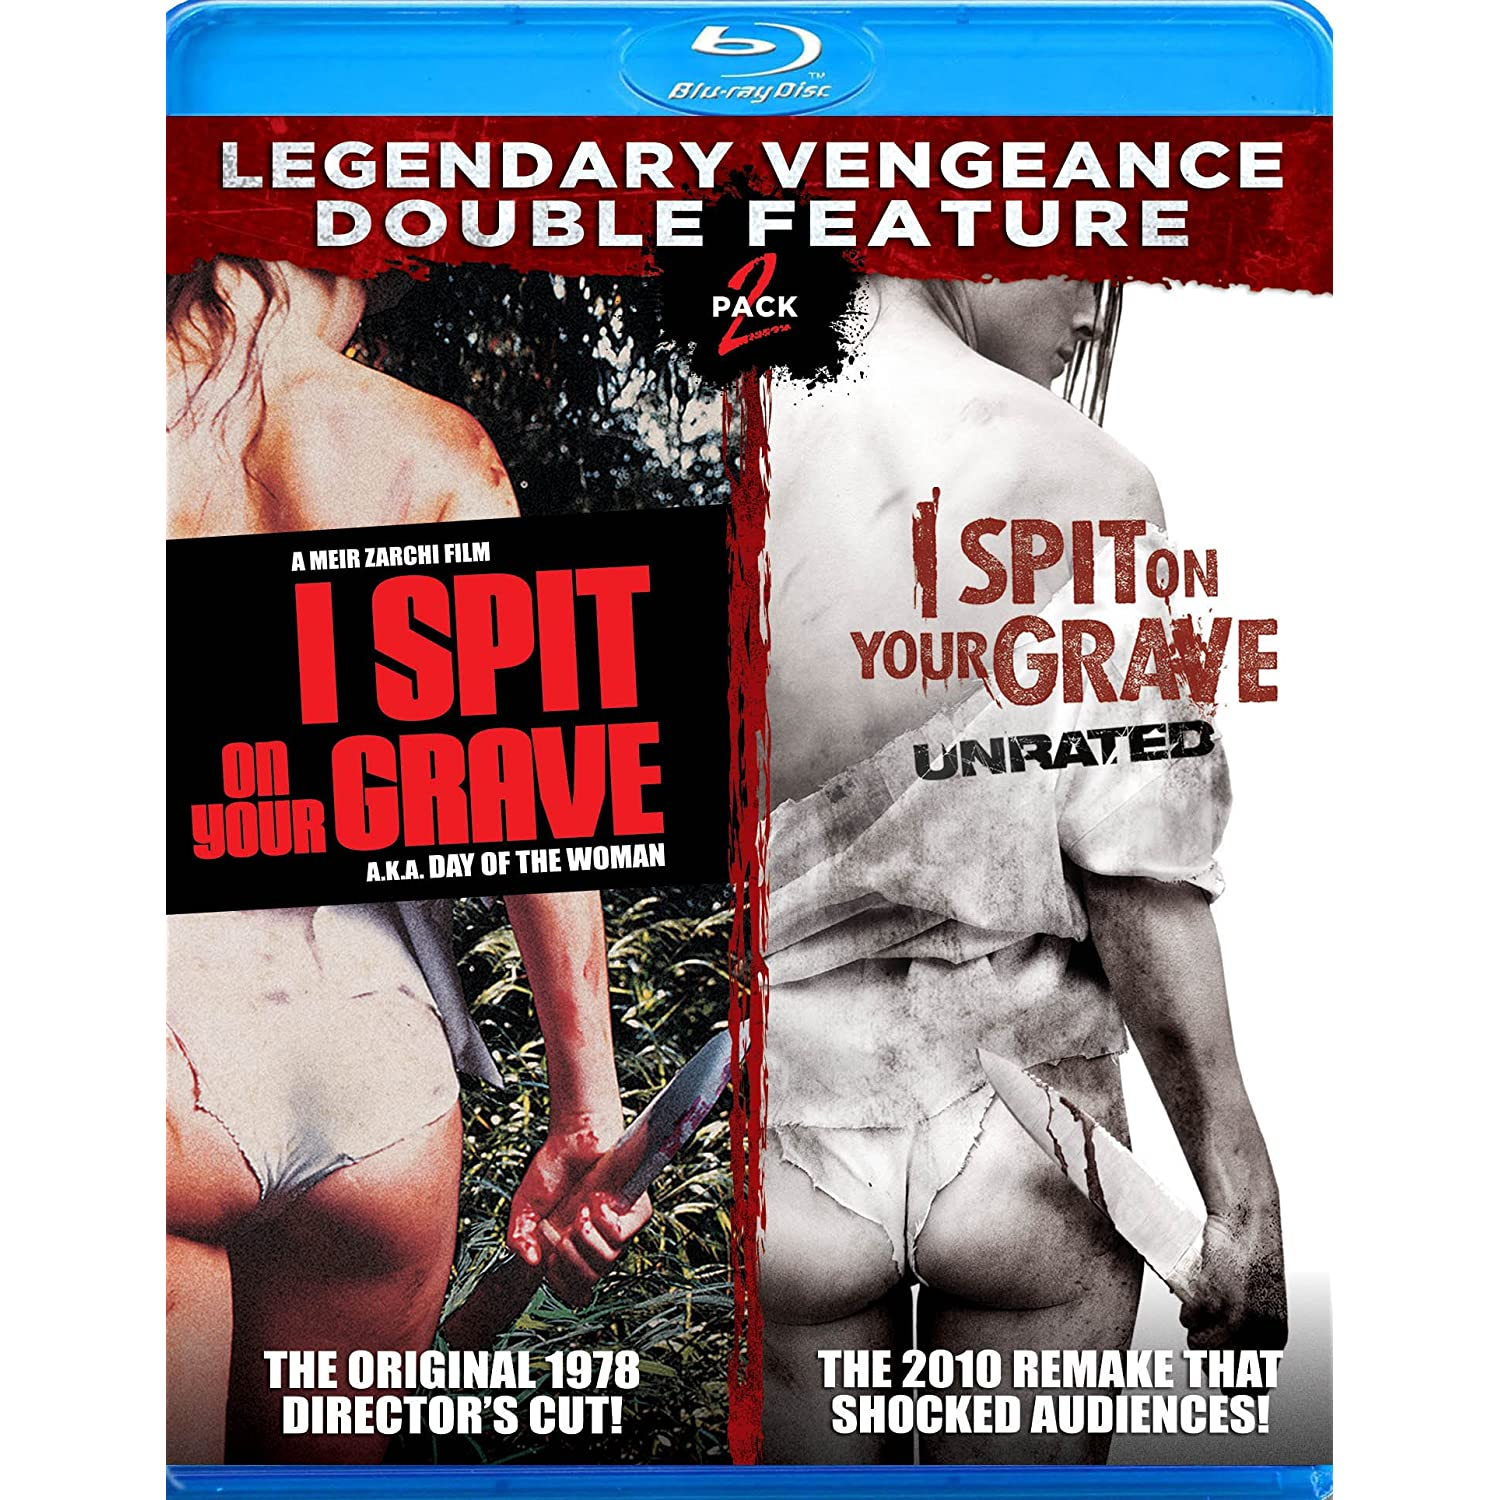 I Spit on your Grave double feature